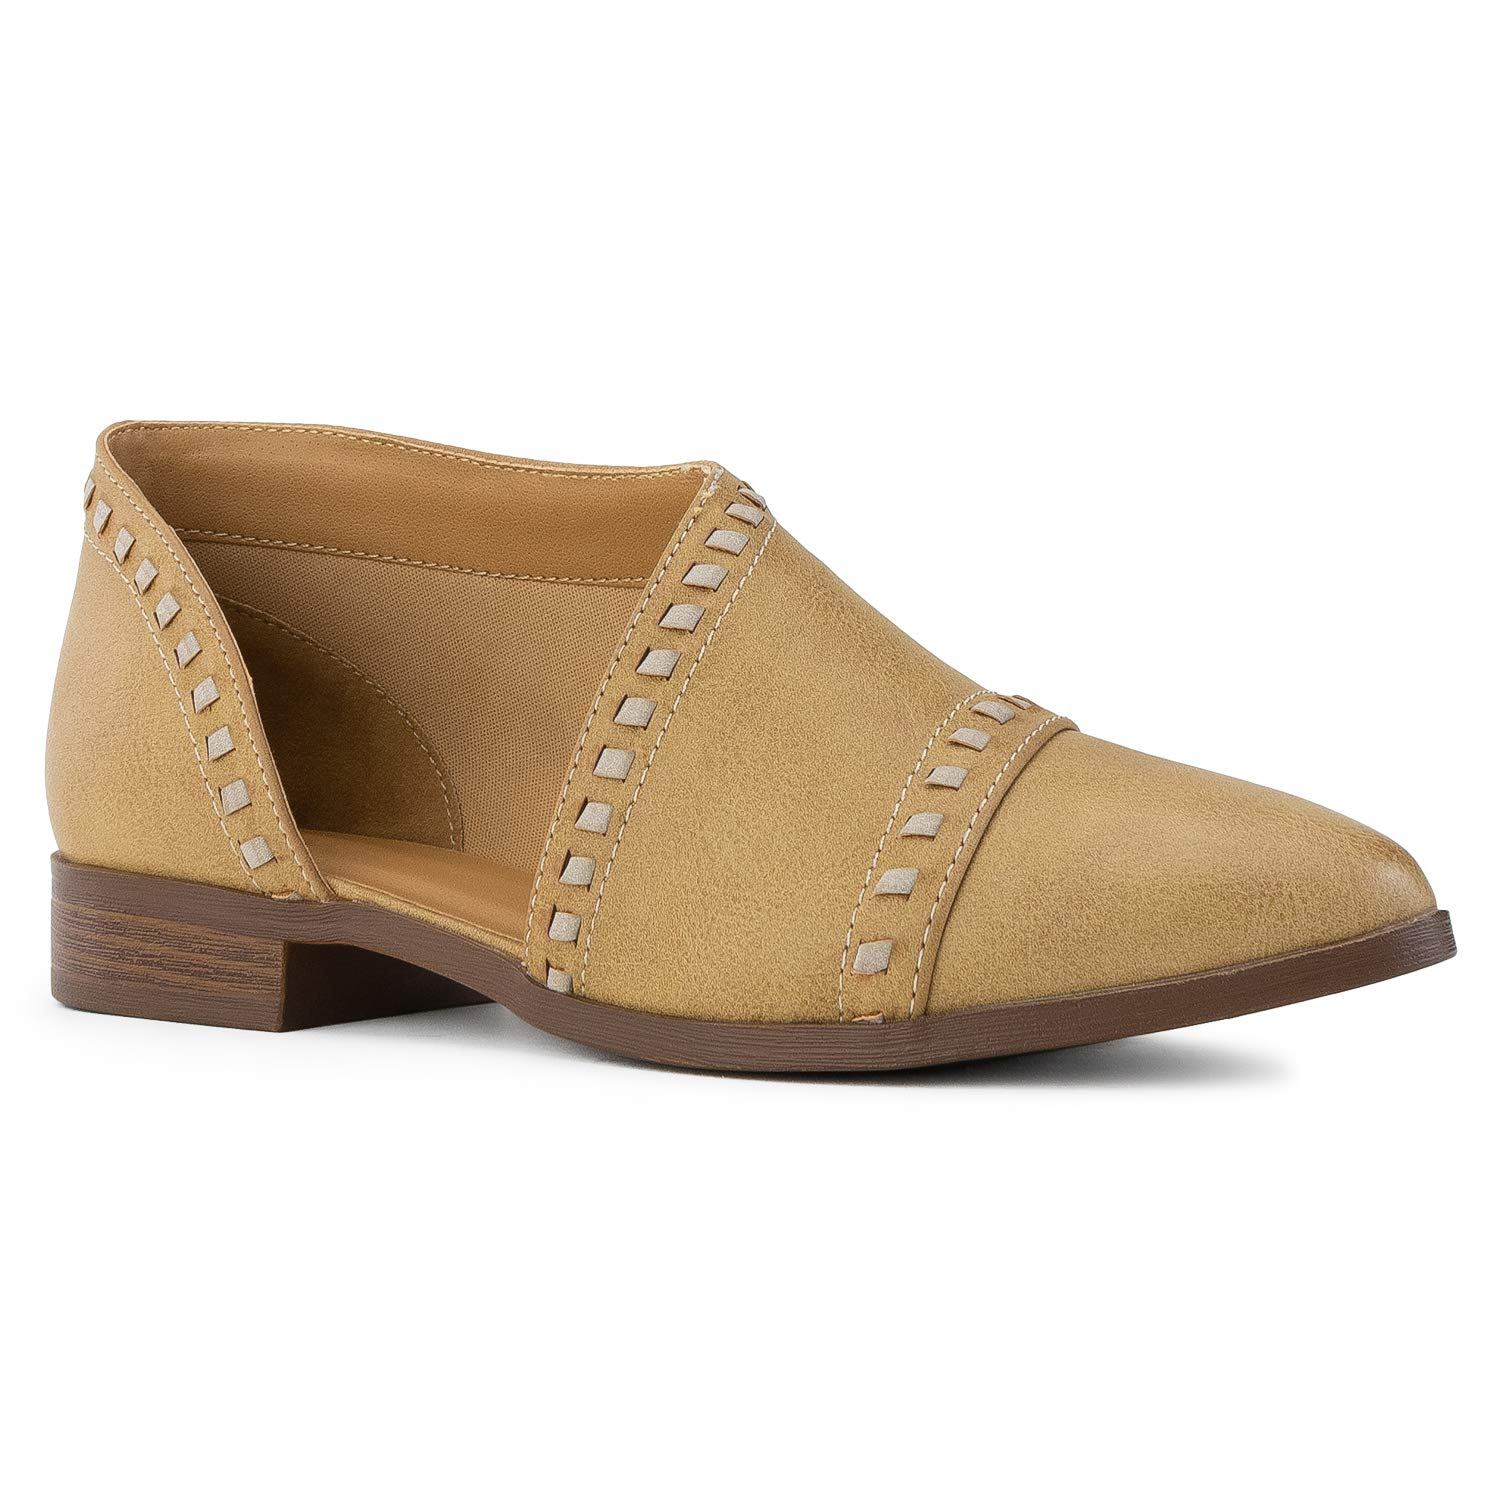 Camel Vegan Distressed Leather - 1 RF ROOM OF FASHION Women's Almond Toe Open Shank Slip On Loafers - Western Inspired Stacked Heel shoes - Vegan Low Heel Flats